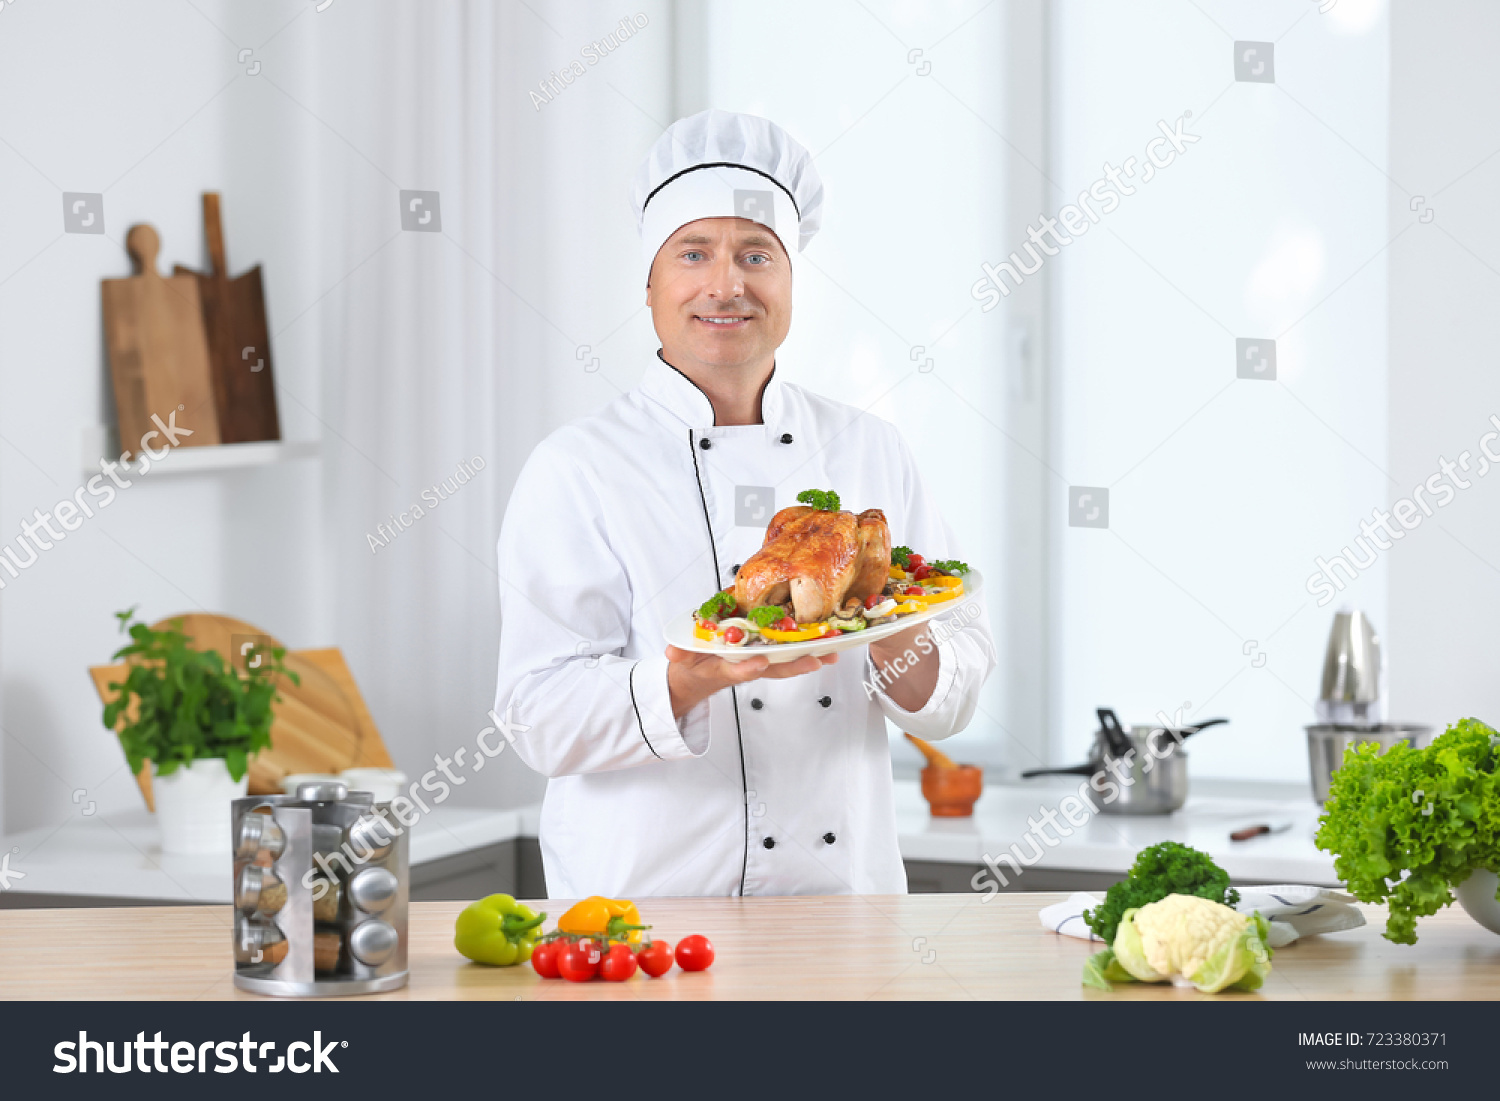 Male Chef Holding Plate Cooked Chicken Stock Photo (Download Now ...